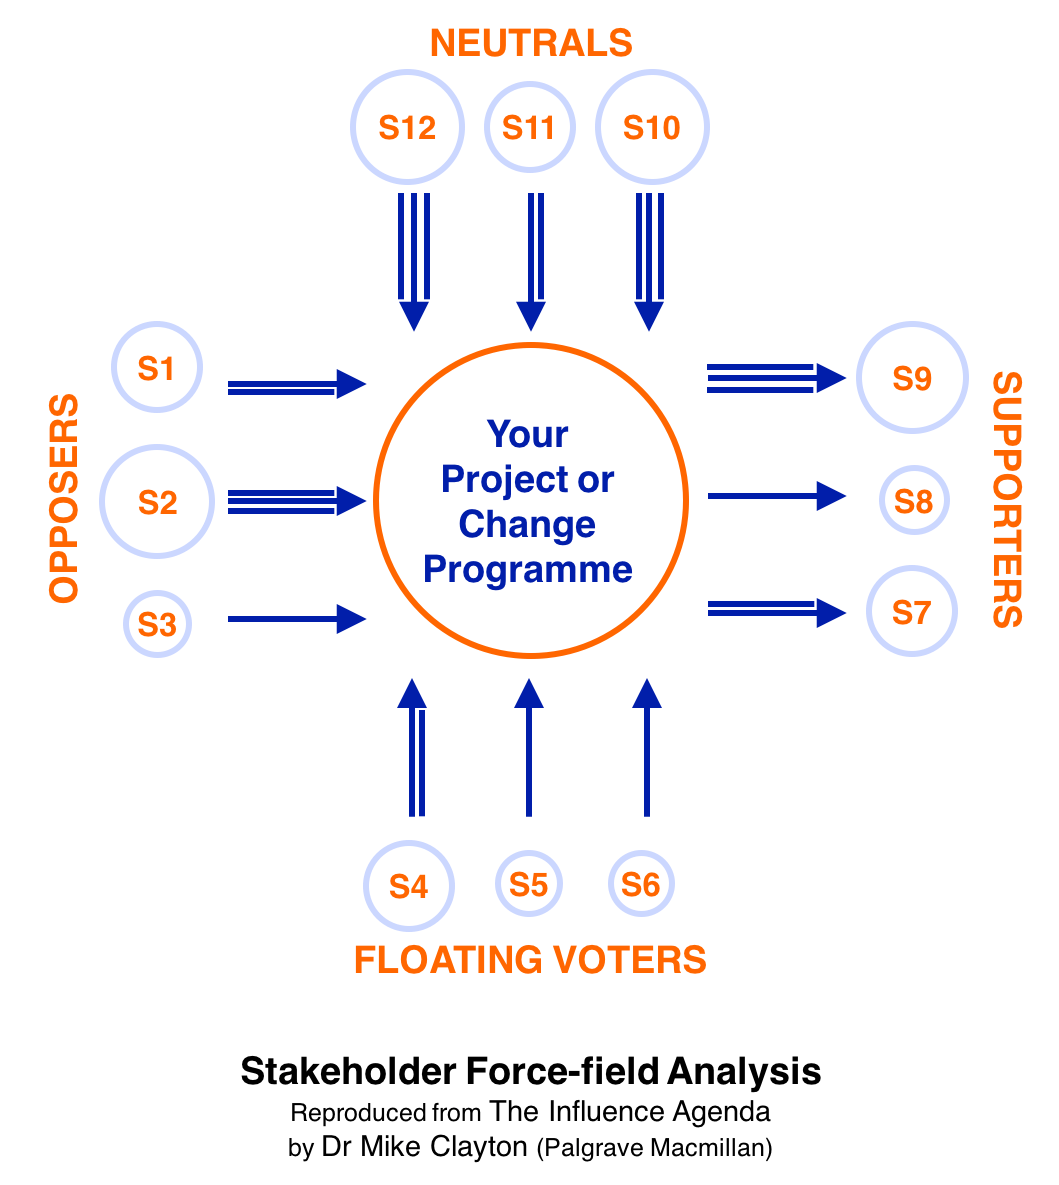 Stakeholder Force-field Analysis